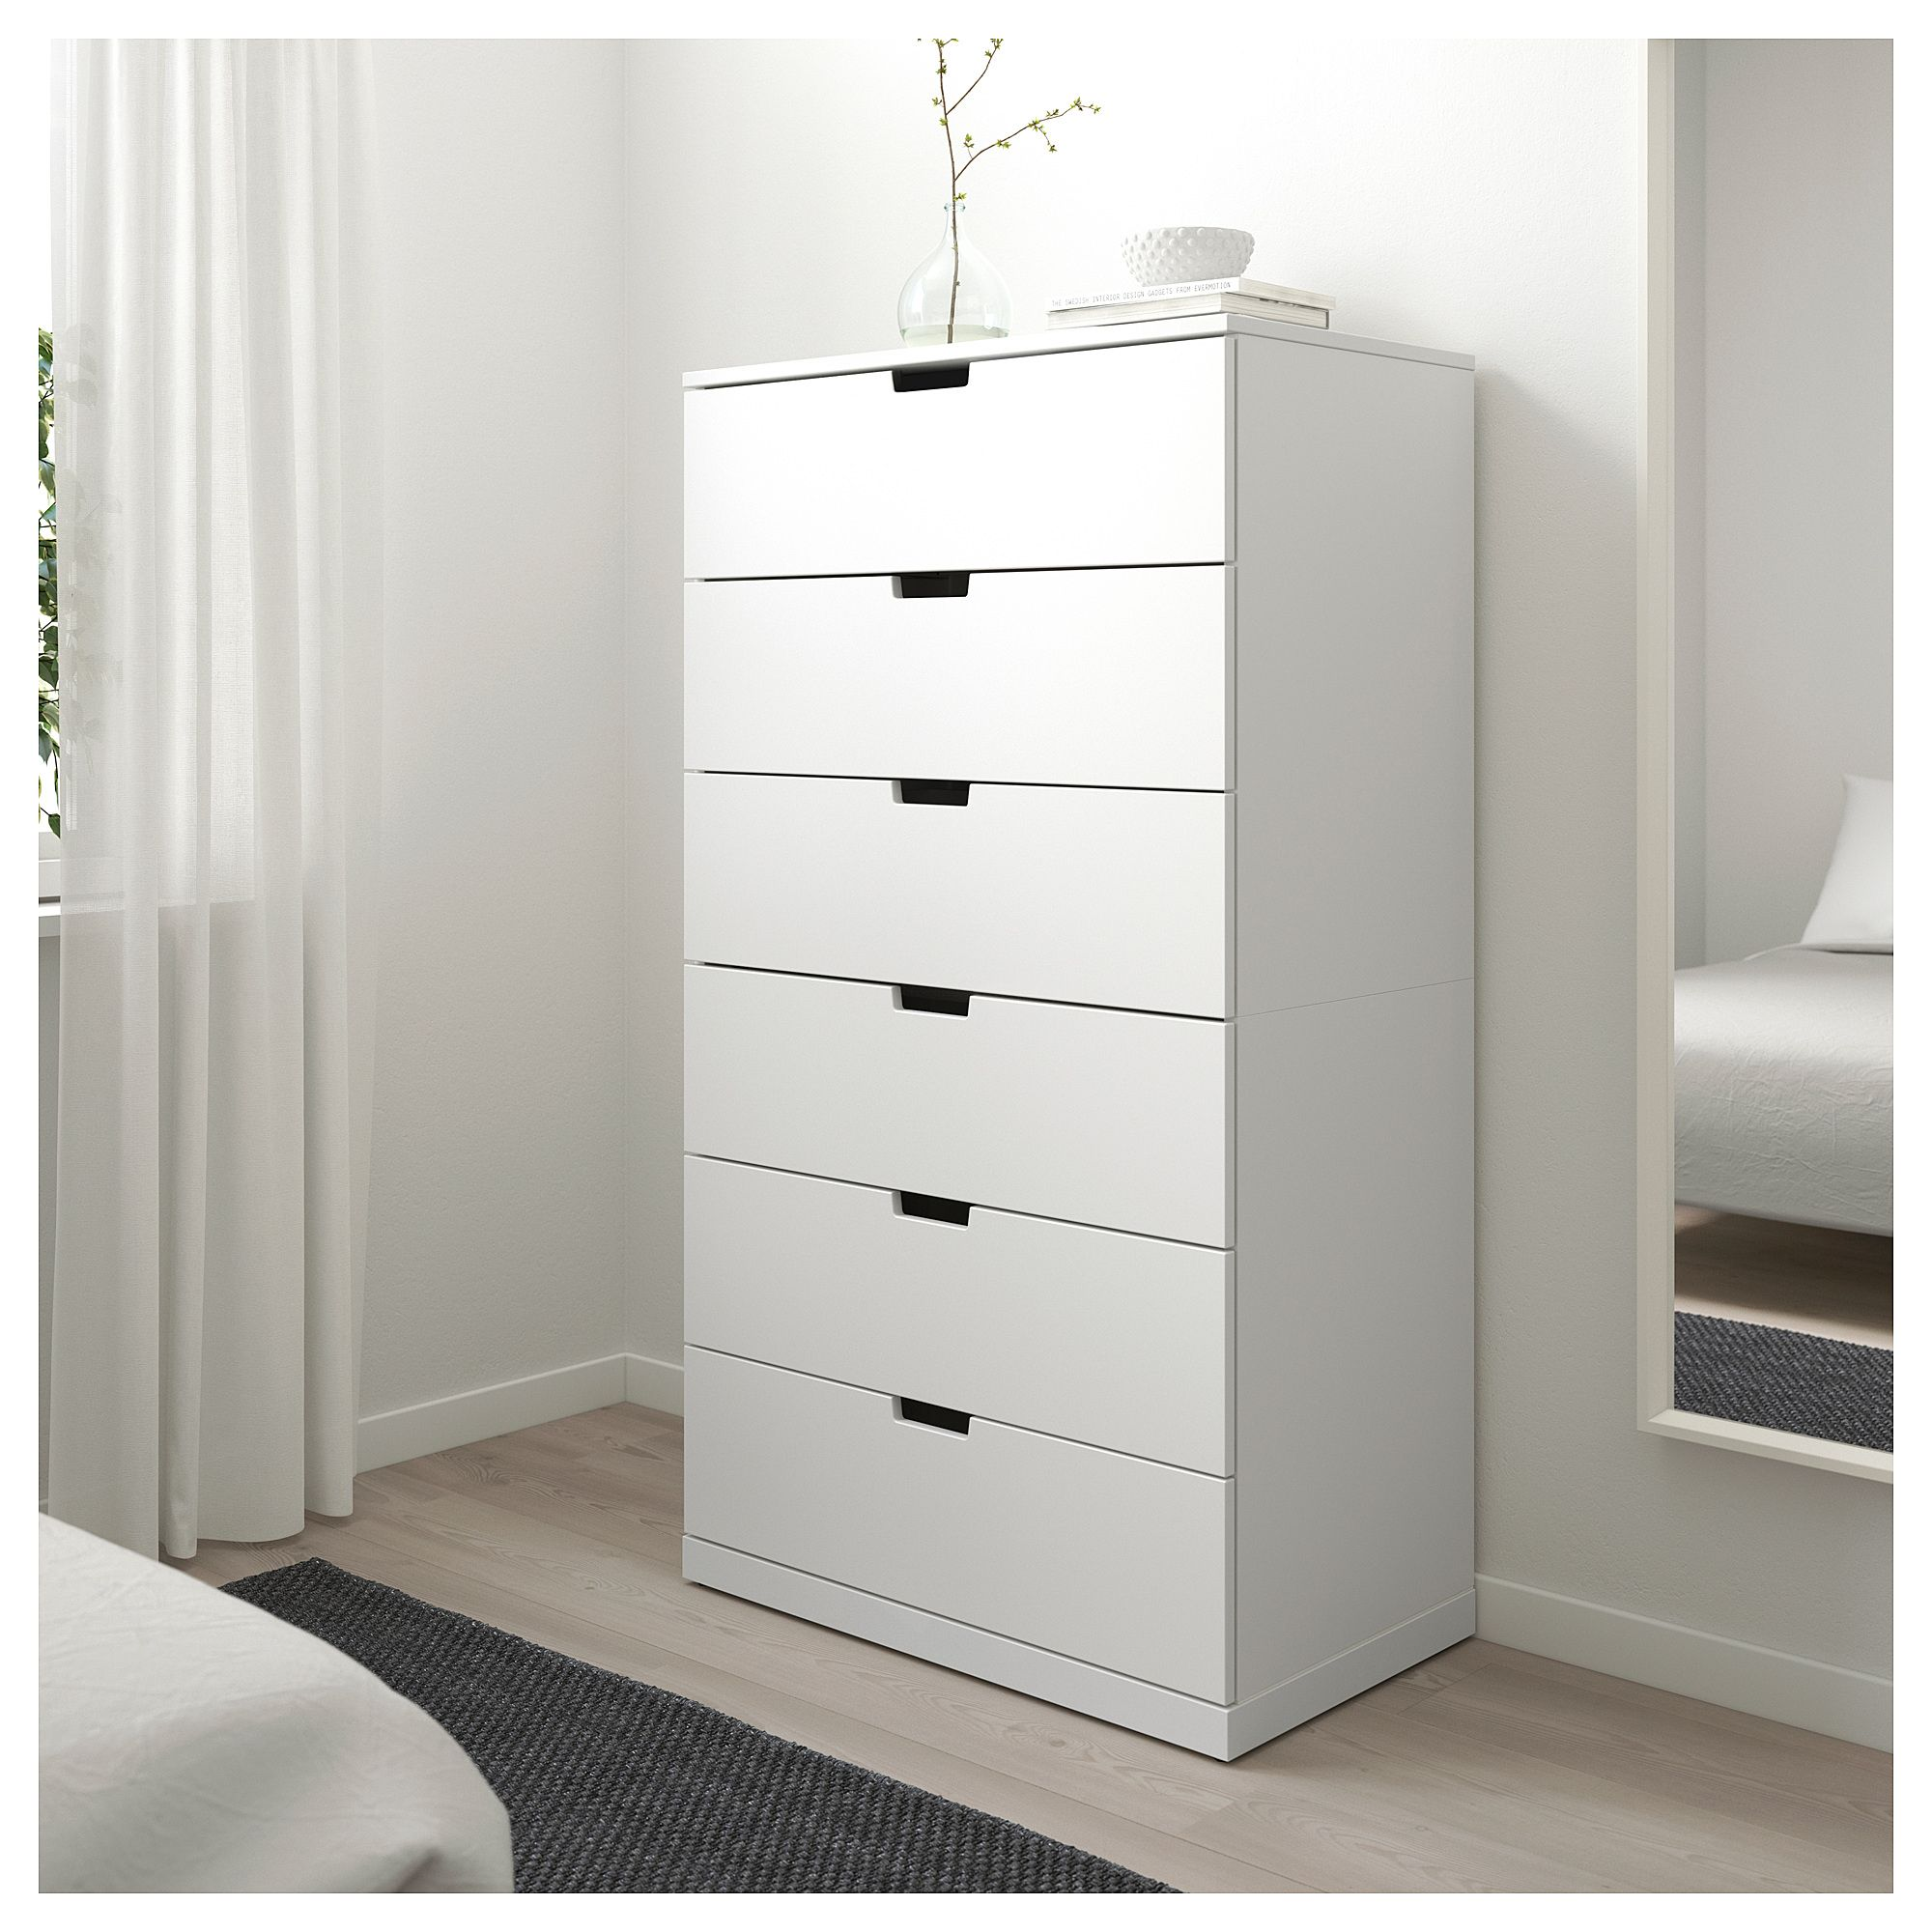 Furniture Home Furnishings Find Your Inspiration Ikea Chest Of Drawers Ikea Nordli 6 Drawer Chest [ 2000 x 2000 Pixel ]